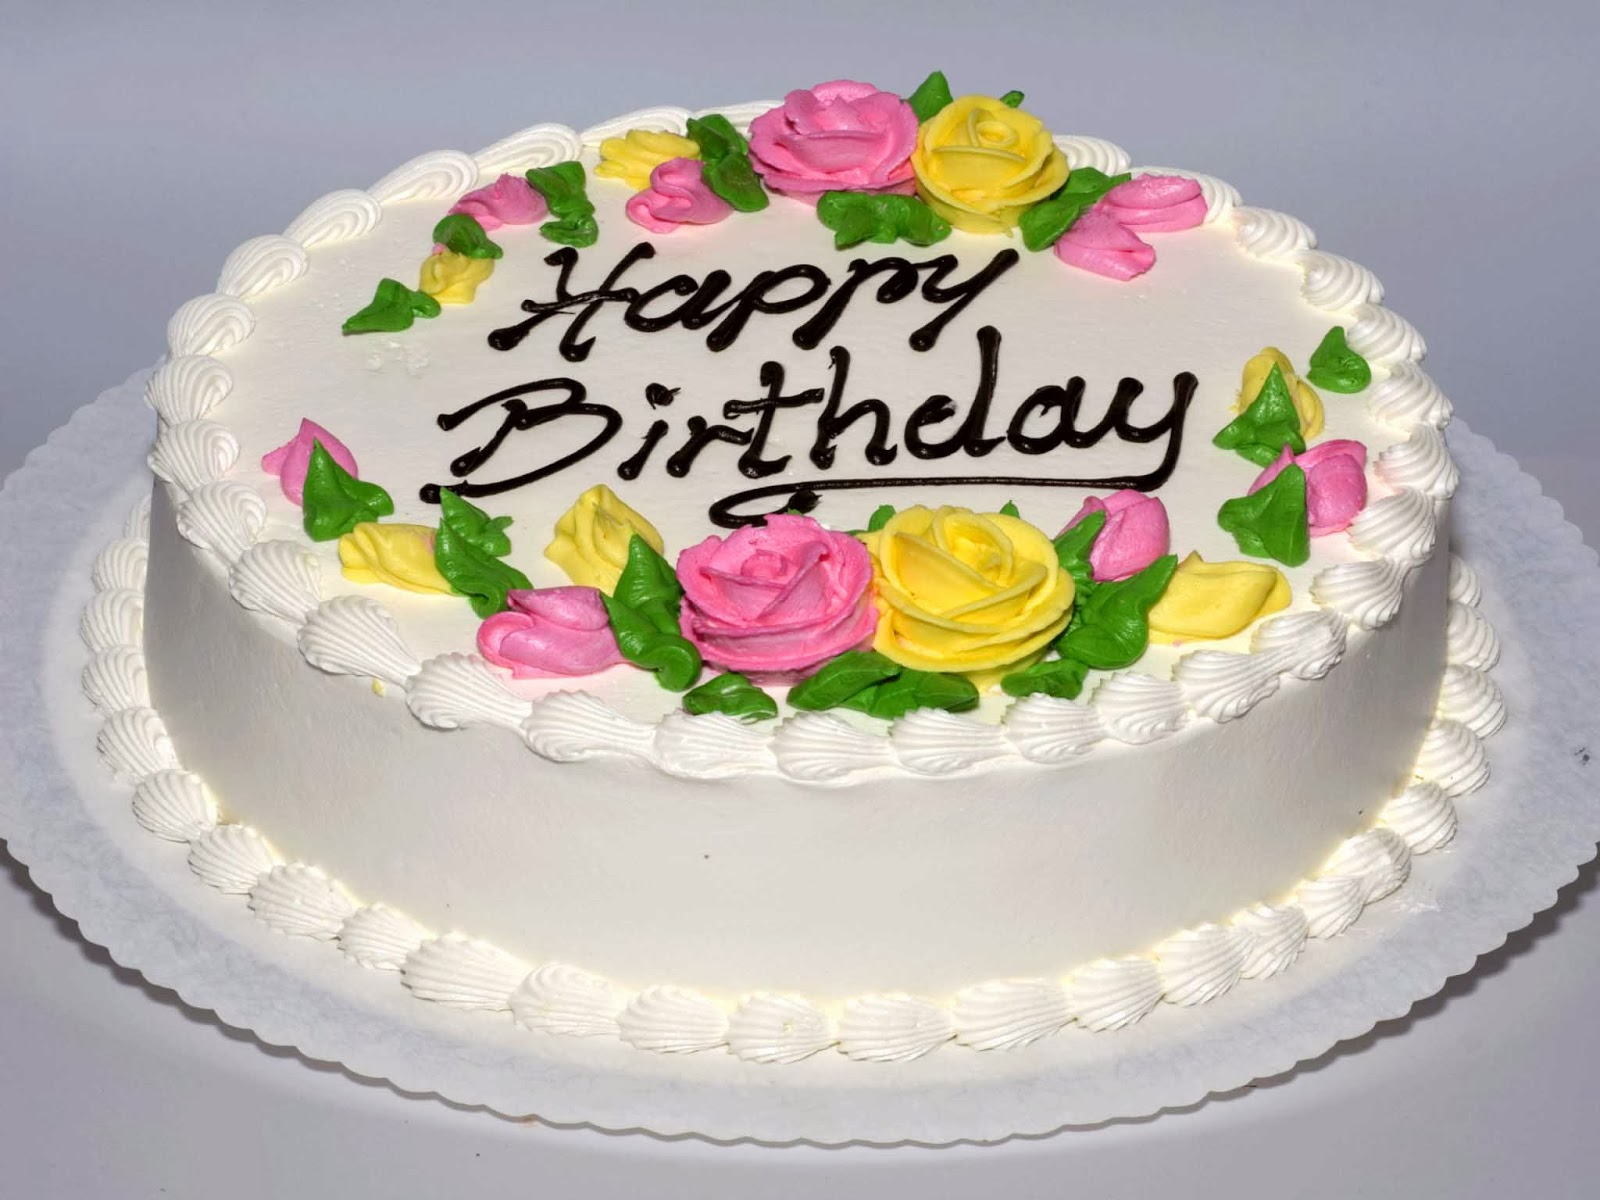 Birthday Cake Of Images Download : Lovable Images: Happy Birthday Greetings free download ...